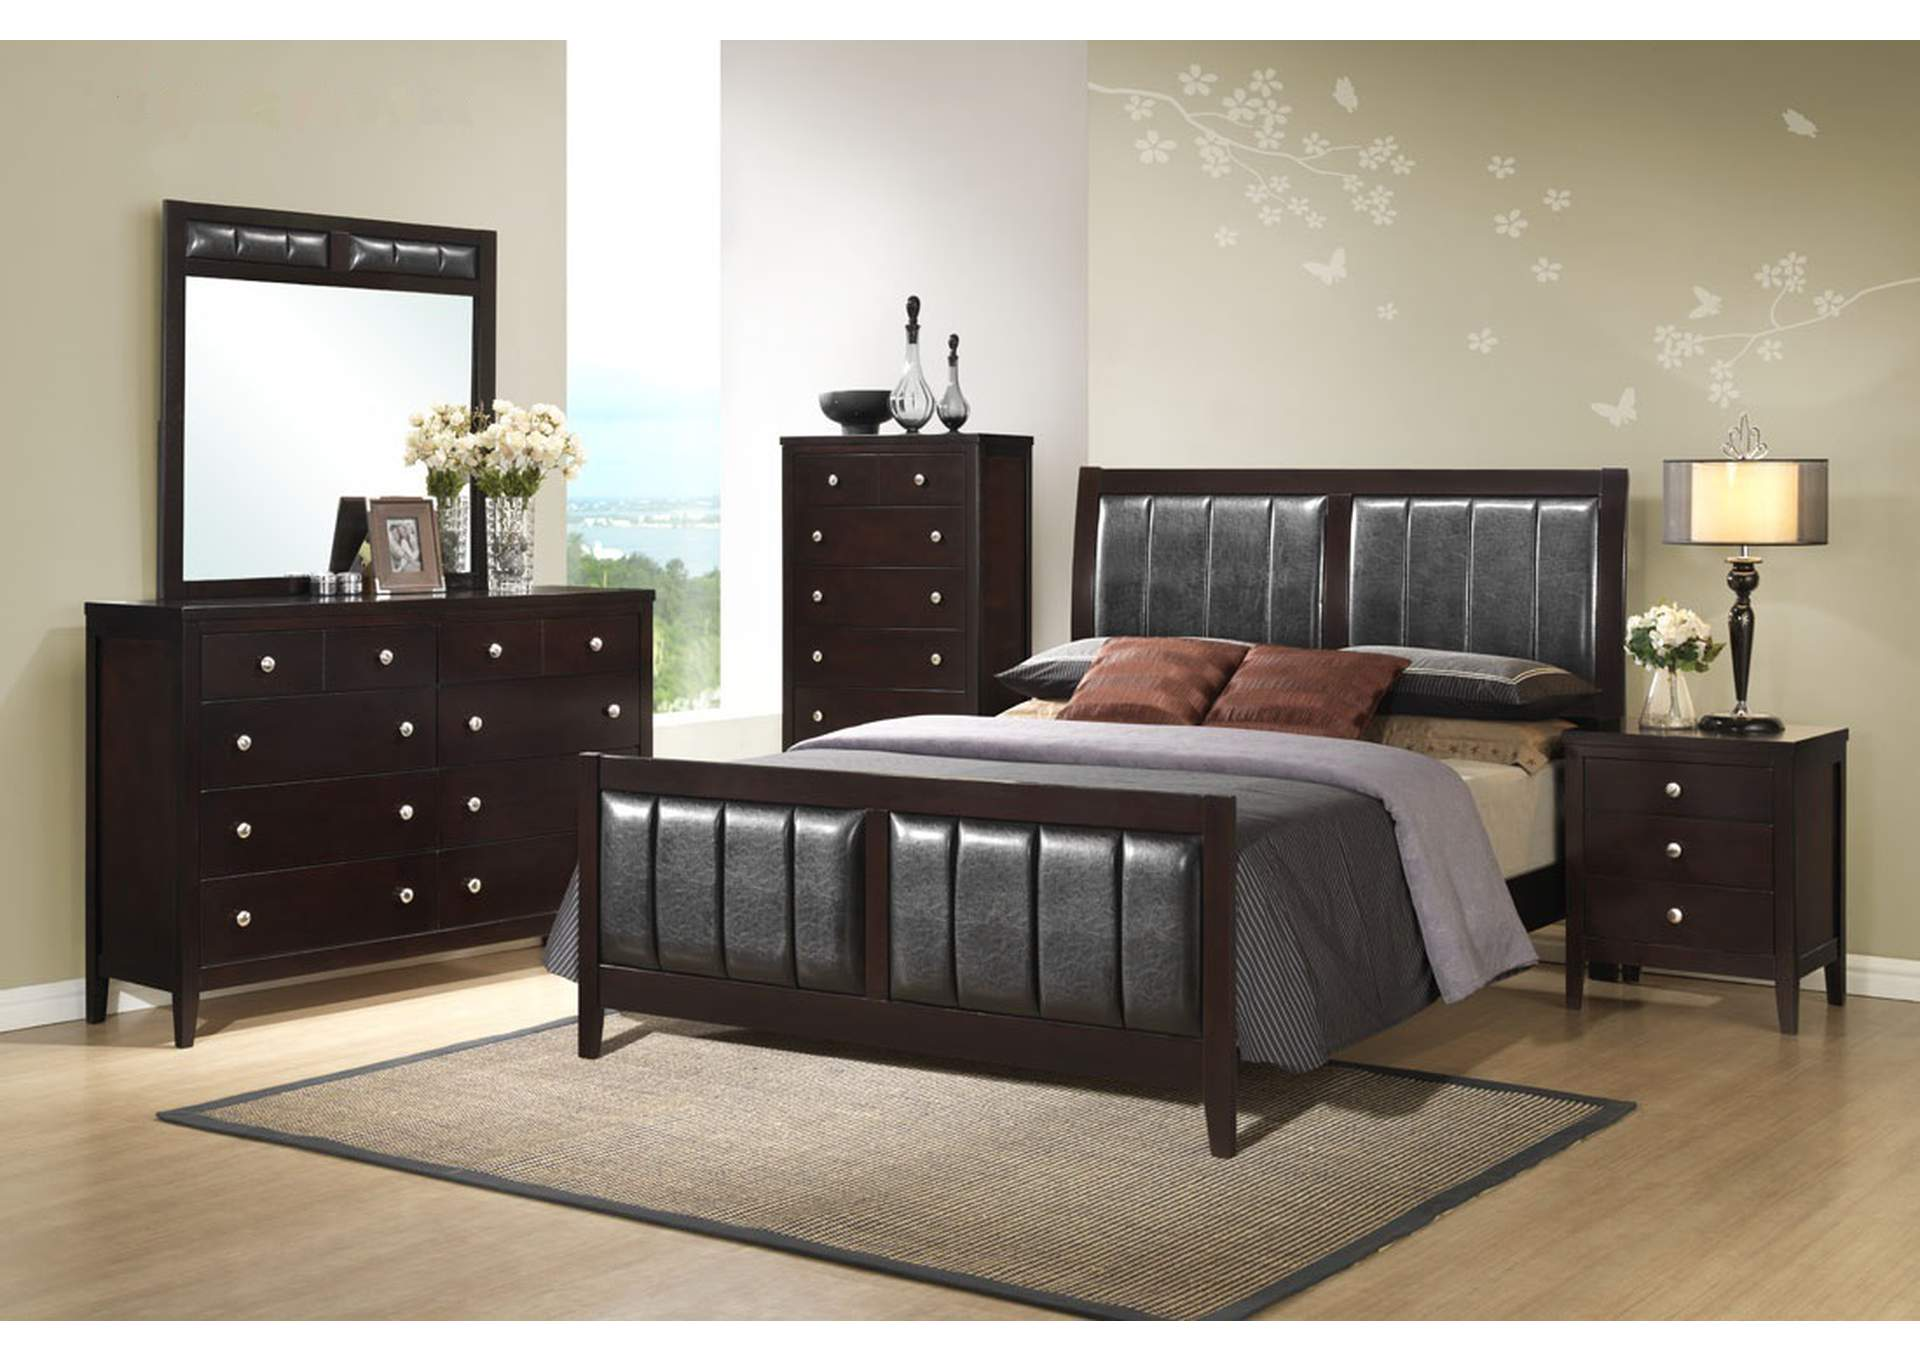 Antique Black Queen Bed,Global Trading